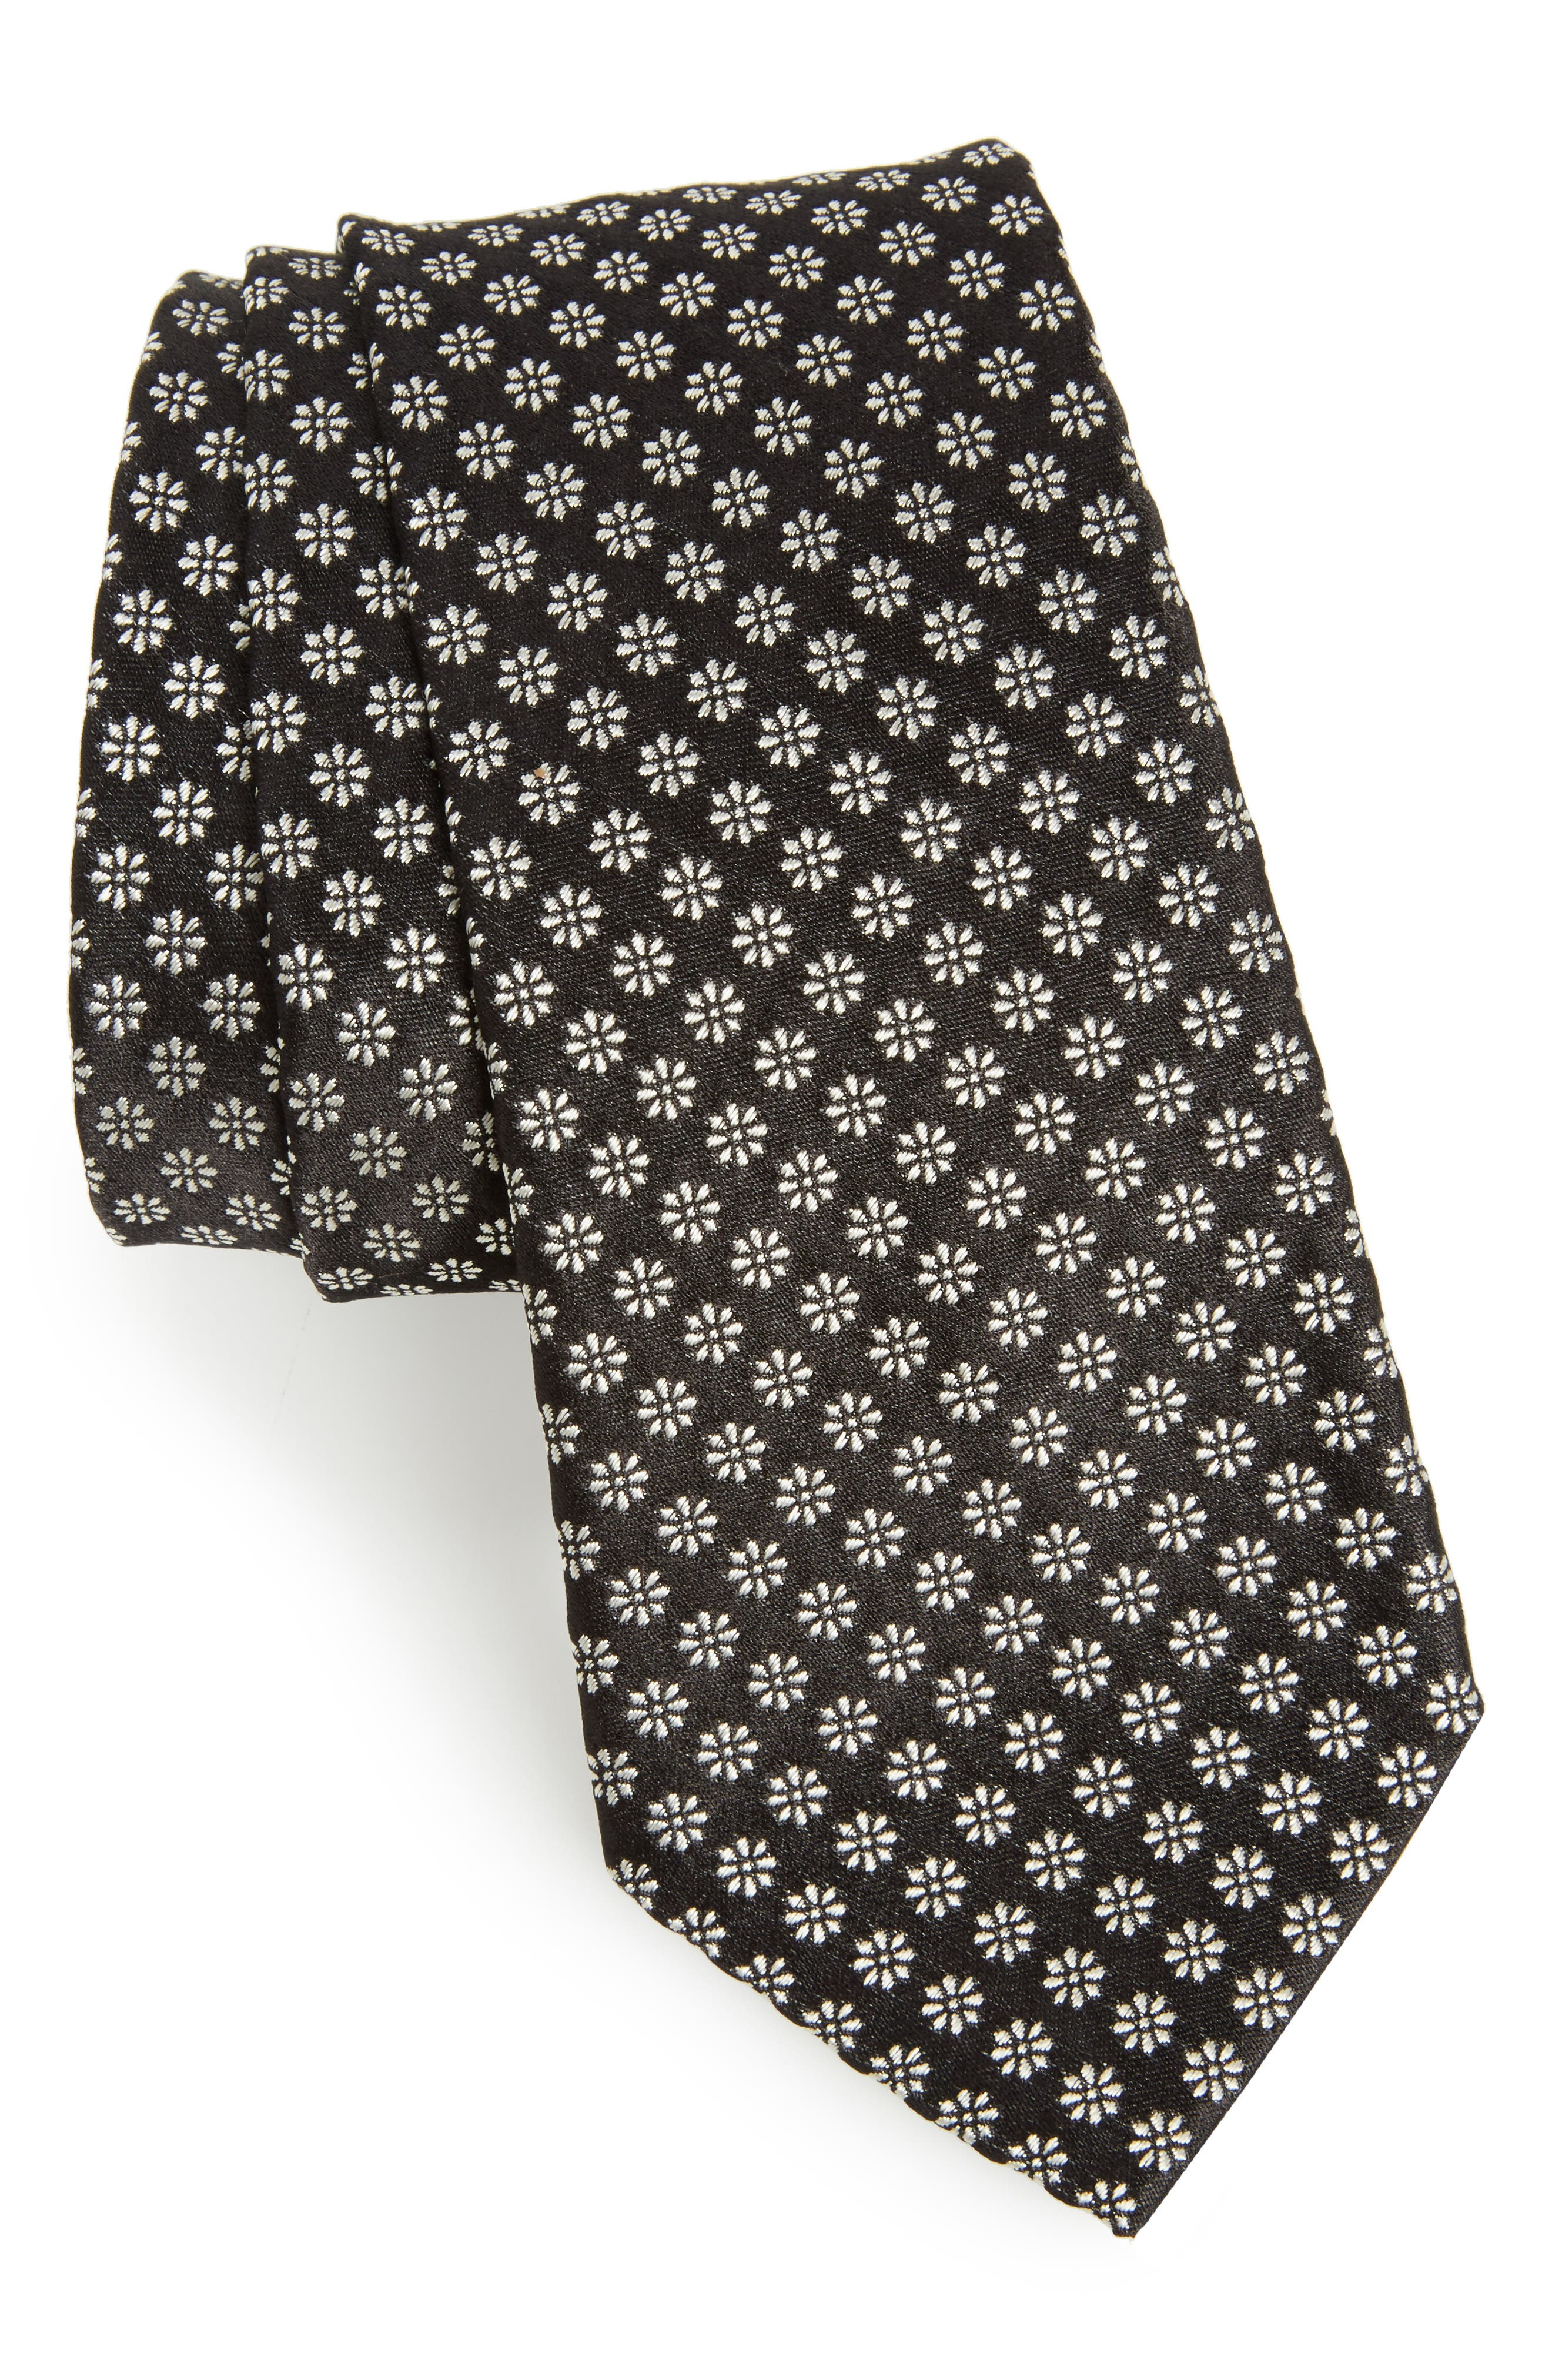 Paul Smith Floral Print Skinny Tie